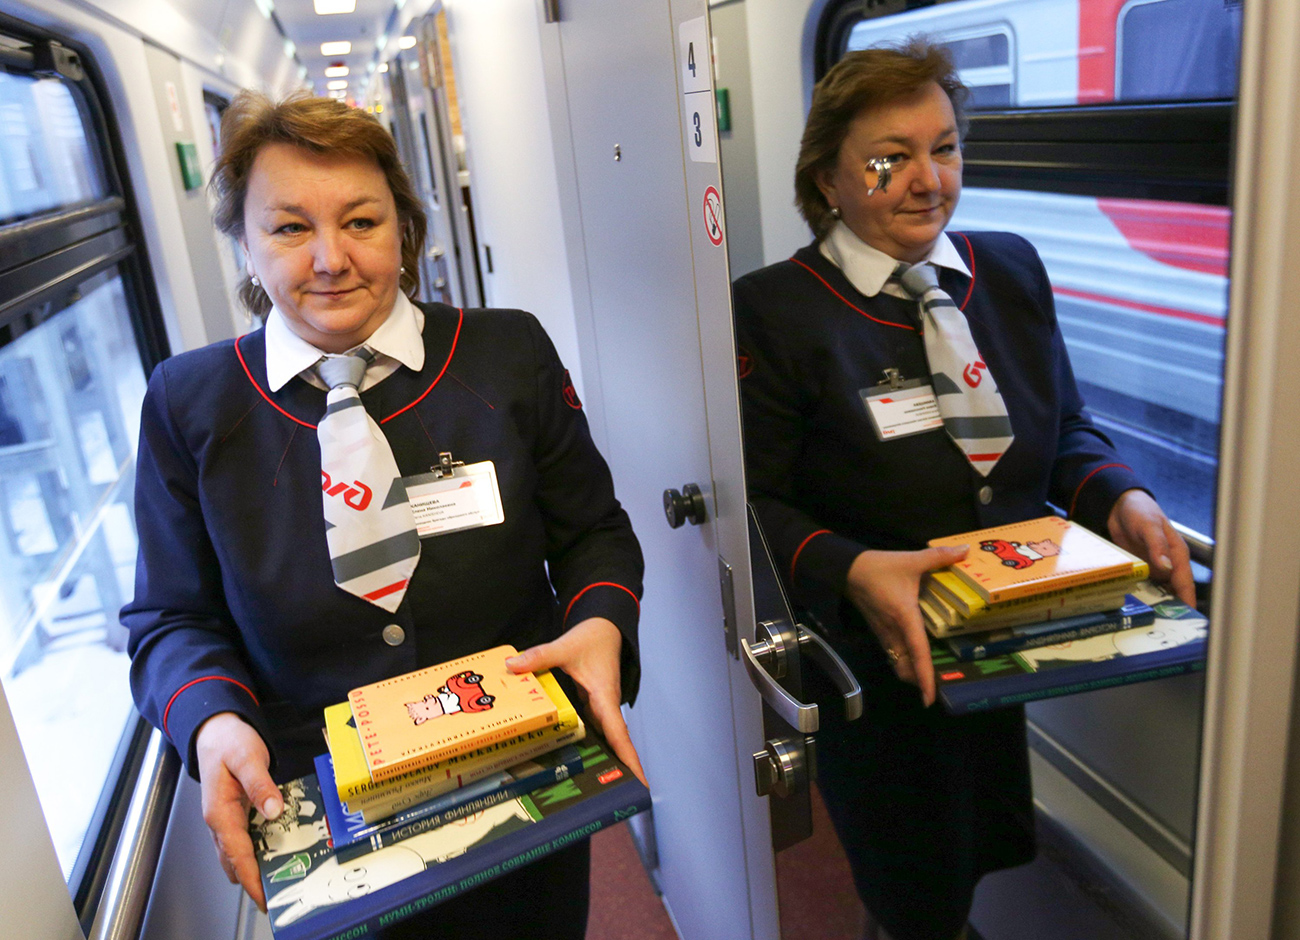 Ask the train staff for a book. Source: Kirill Zykov / Moskva Agency